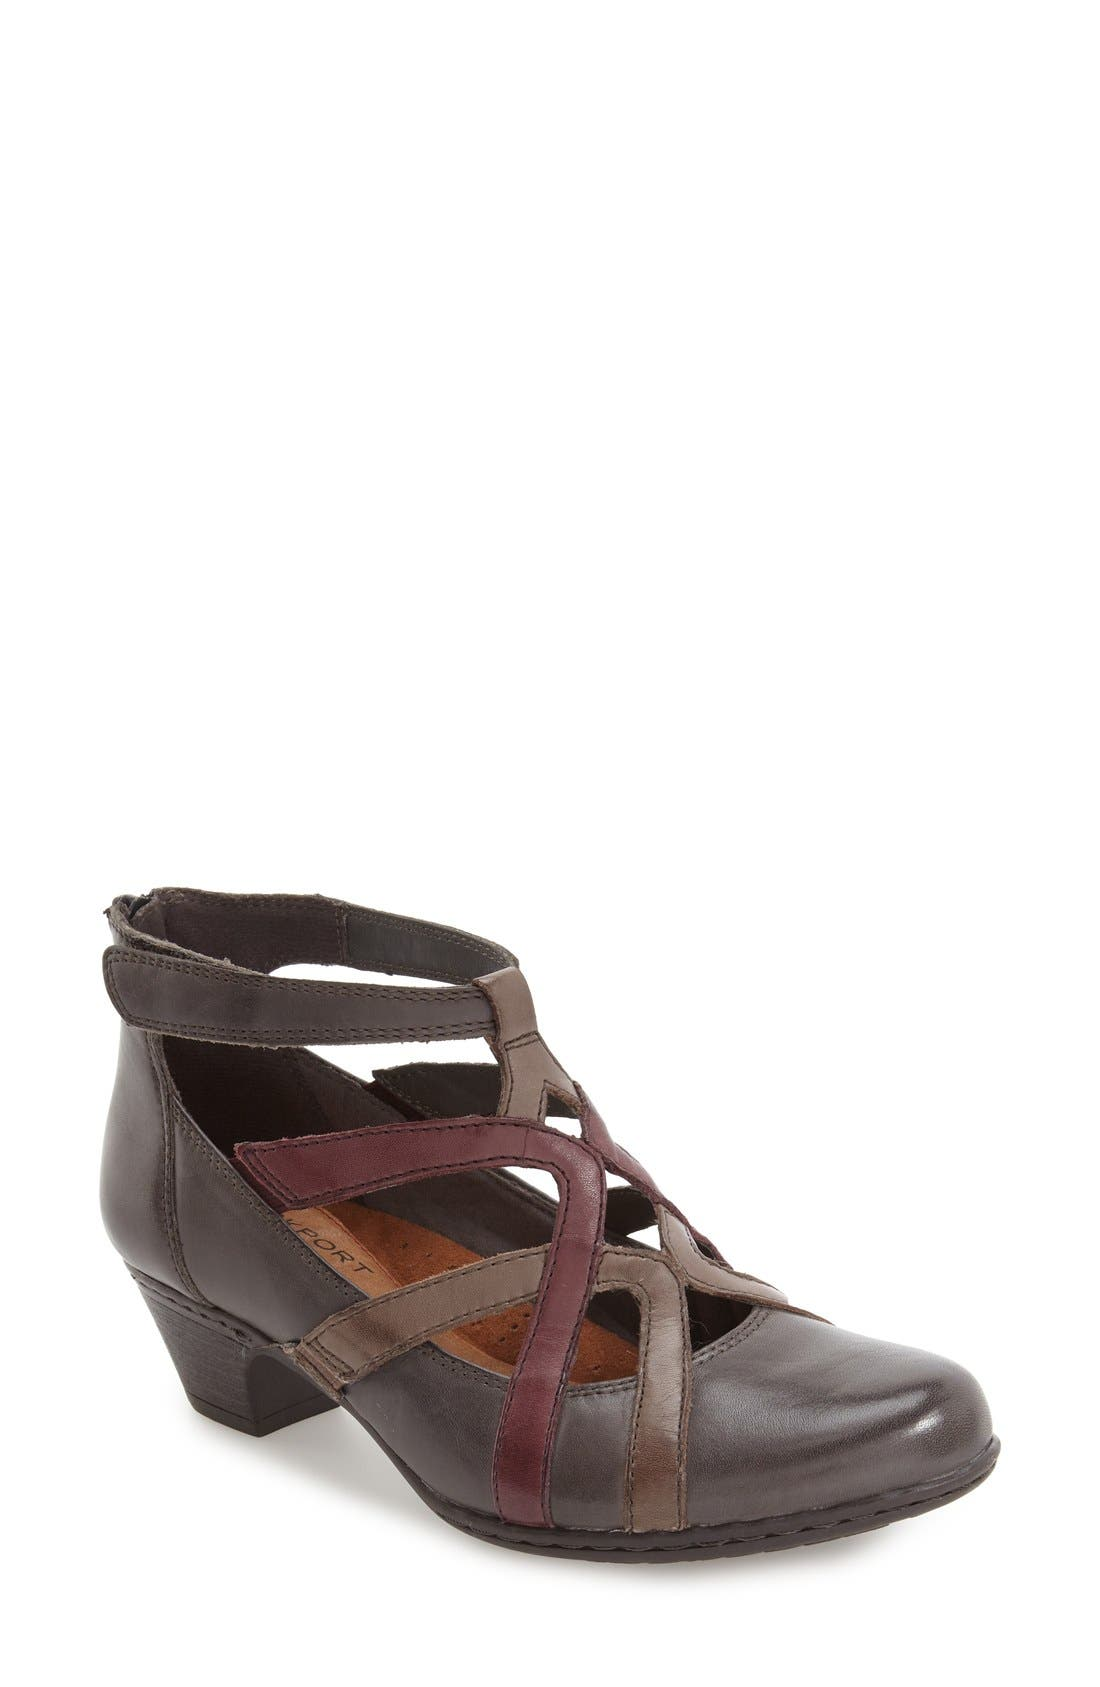 ROCKPORT COBB HILL,                             Adrina Pump,                             Main thumbnail 1, color,                             GREY LEATHER